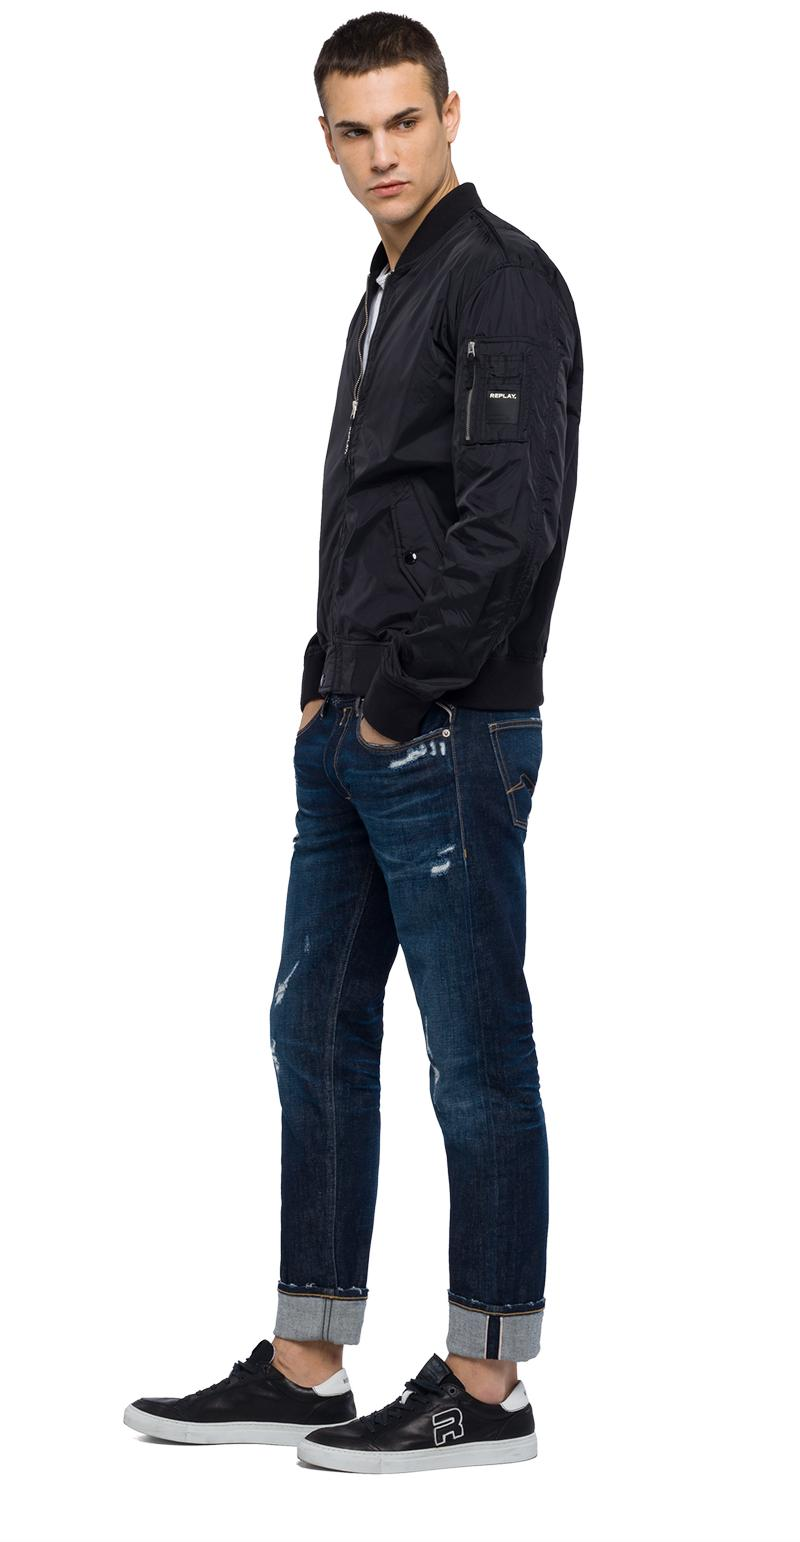 Replay Jeans - Technical bomber jacket with zipper - 2